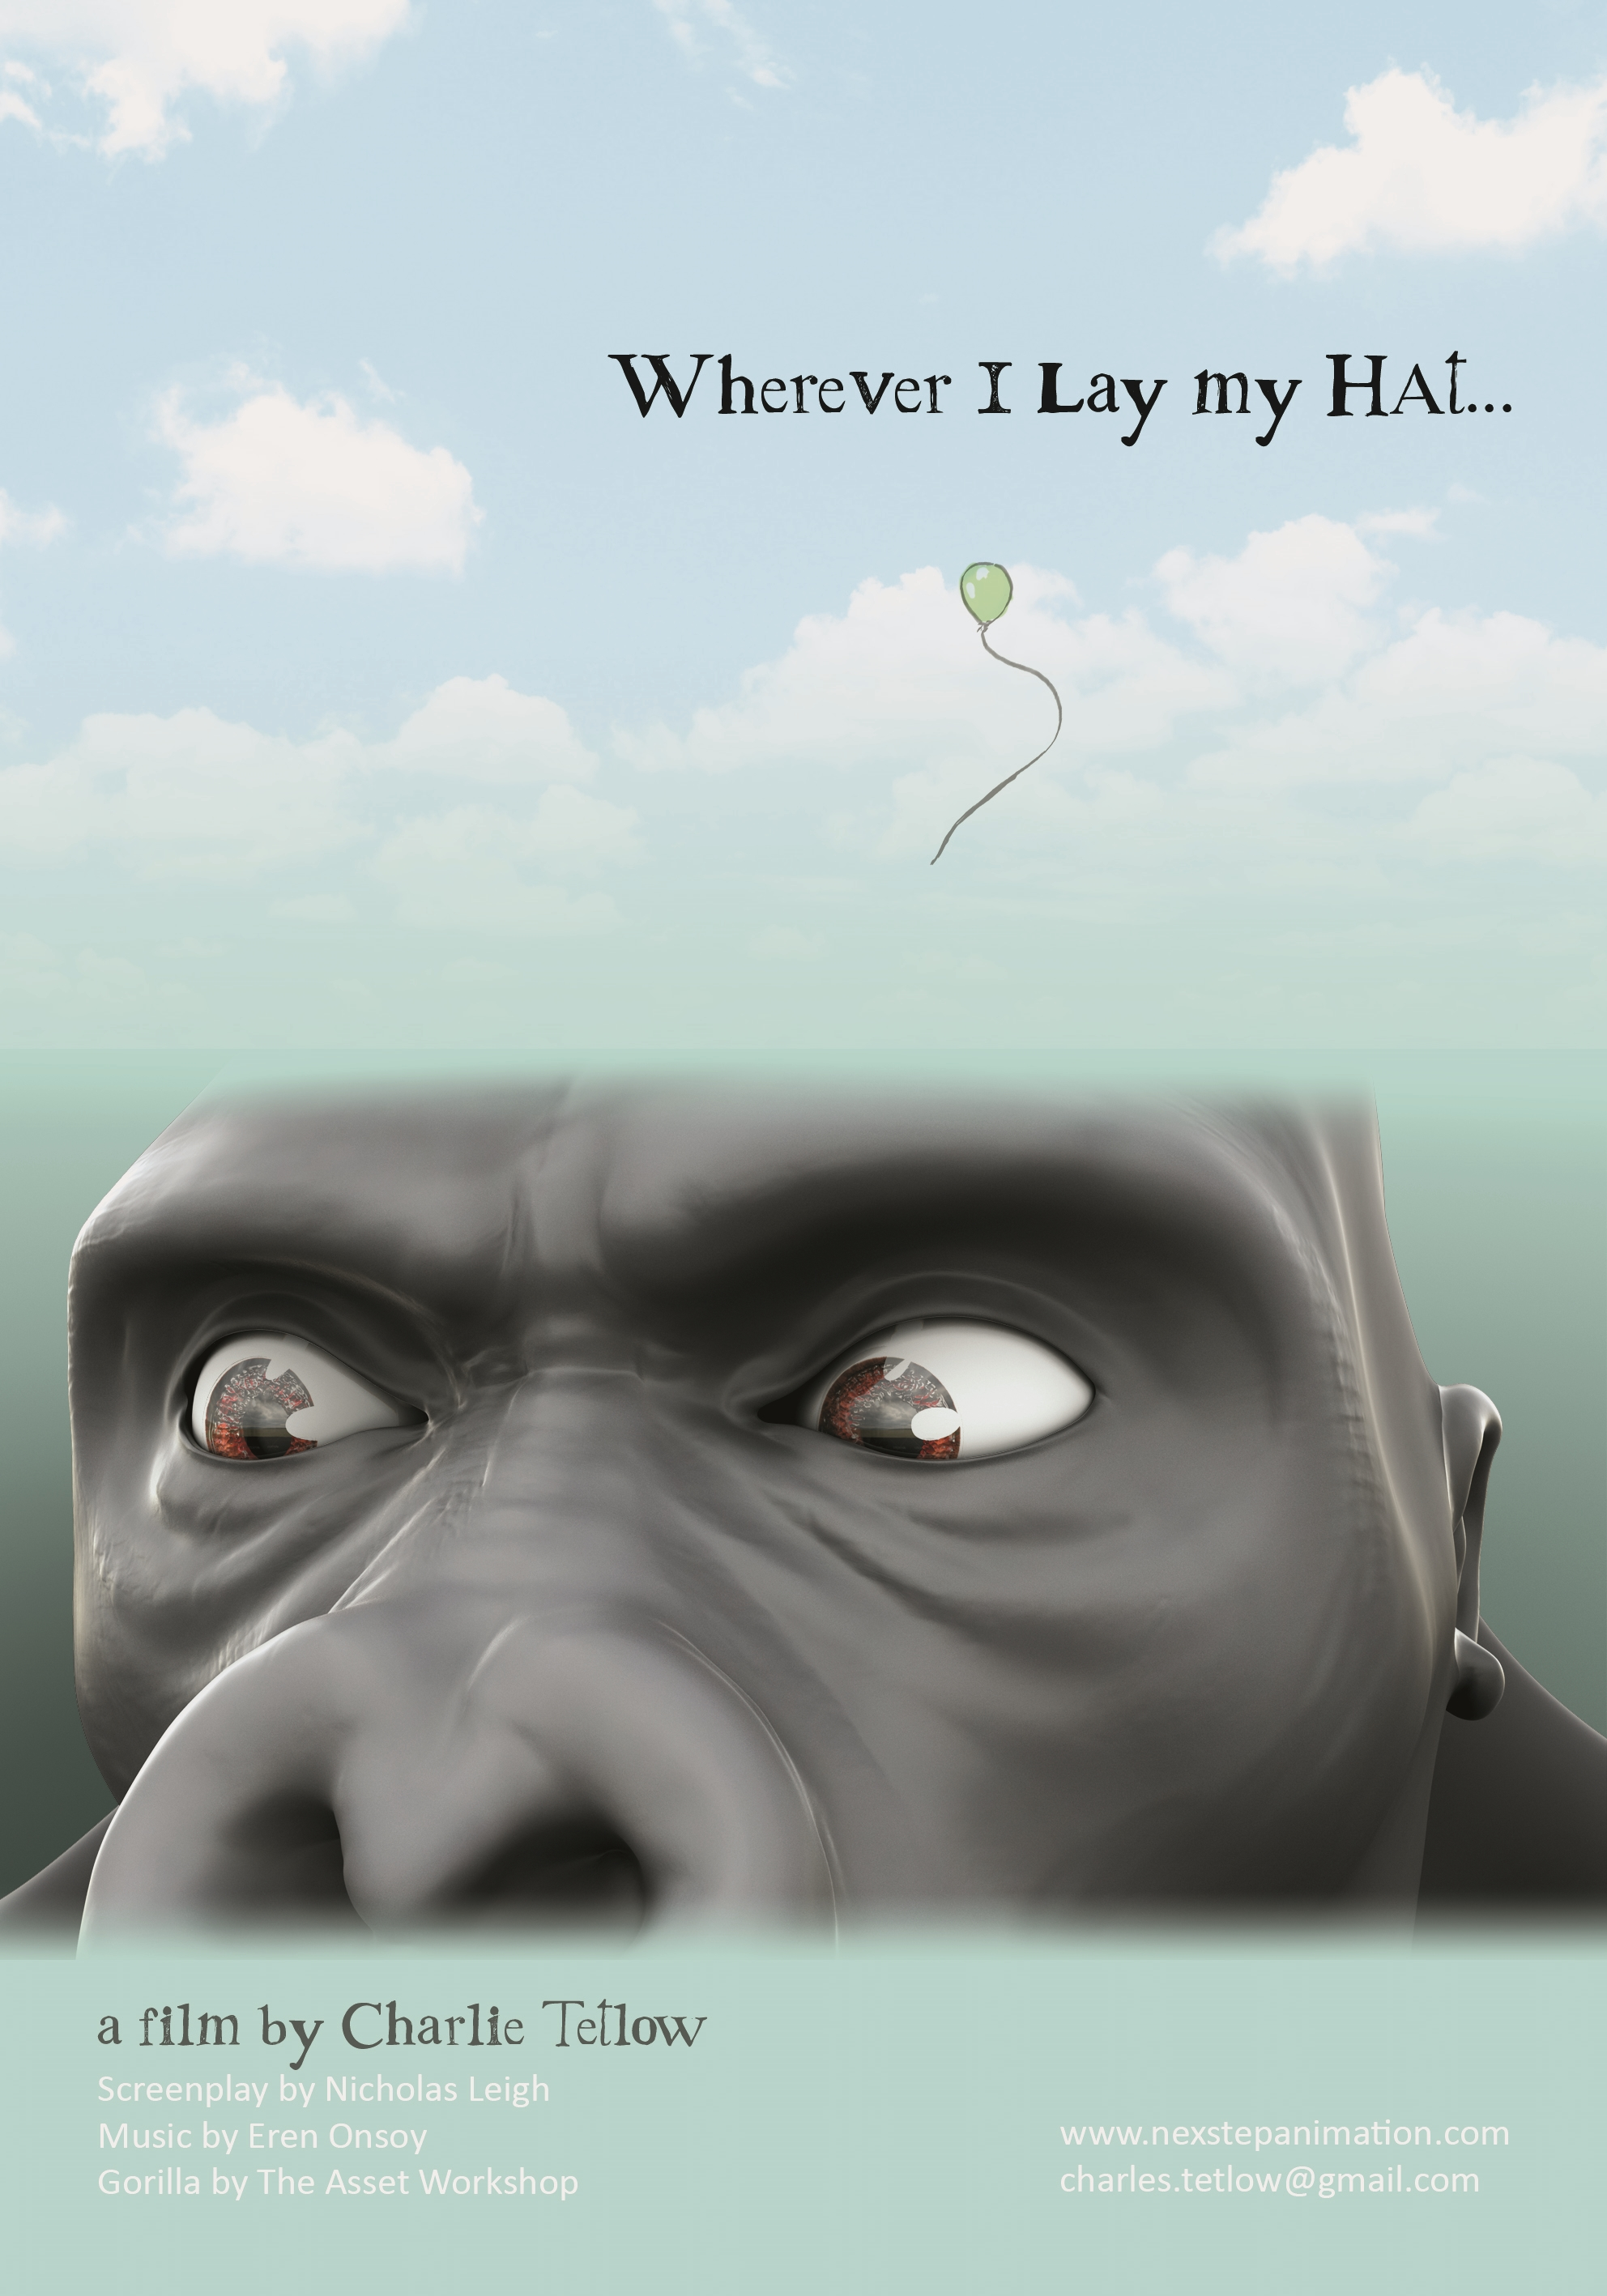 WHEREVER I LAY MY HAT (2015)